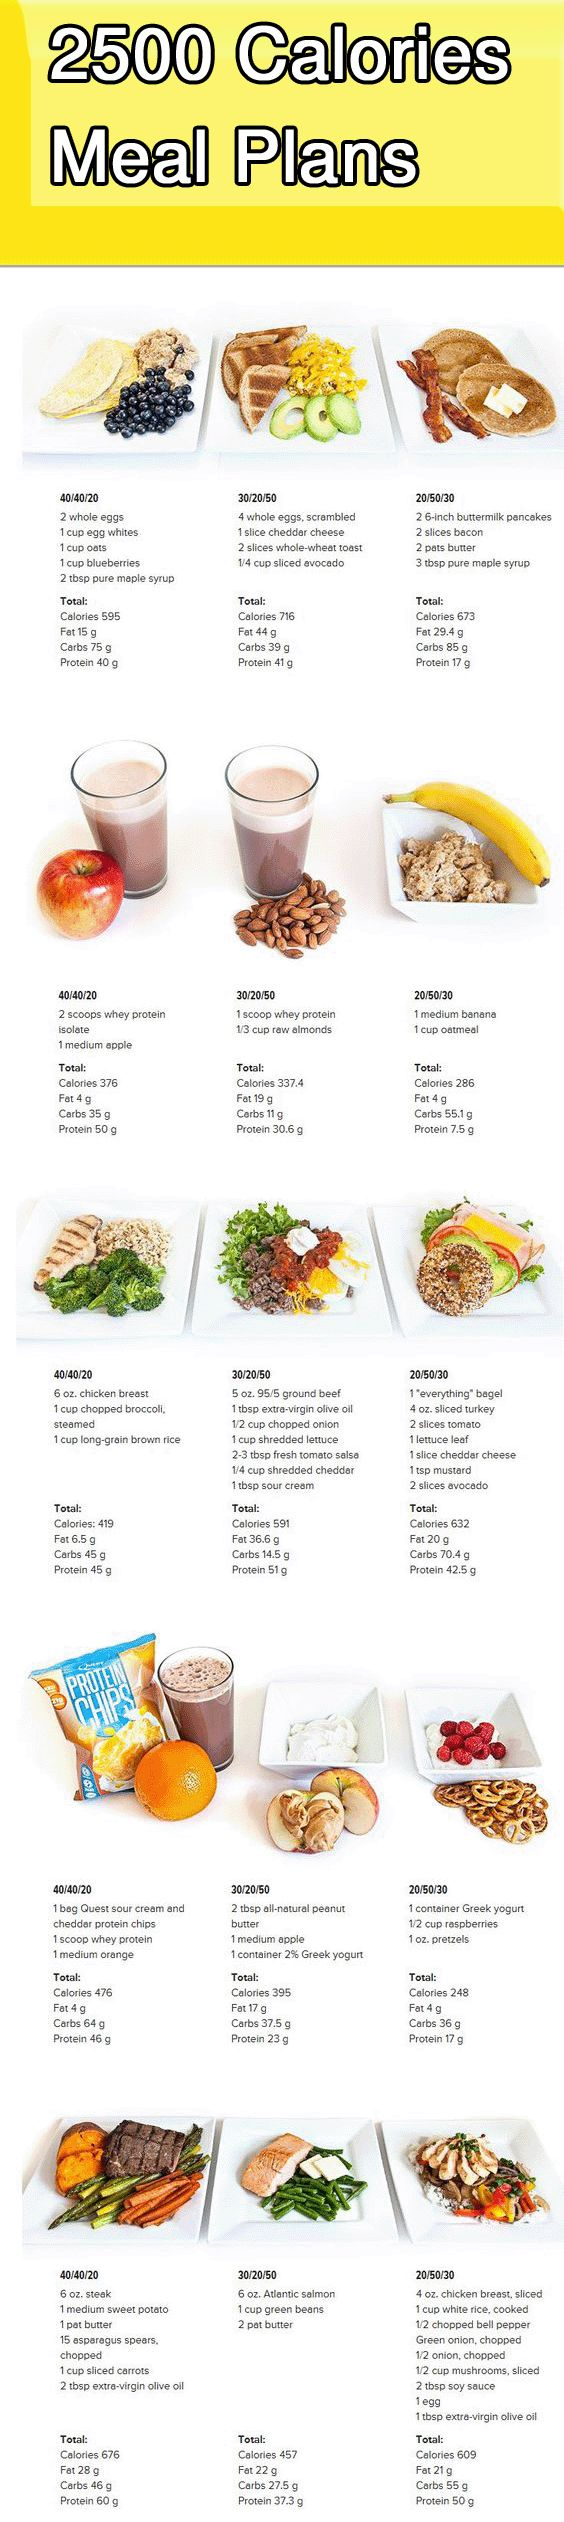 What Does 2,500 Calories Look Like? Once you know those numbers, all you have to do is fill them in with actual food like we've done here. Use this handy visual guide to build your own perfect diet based on your preferred macronutrient ratio! #2500_calories_meal_plan #2500_calories_look_like